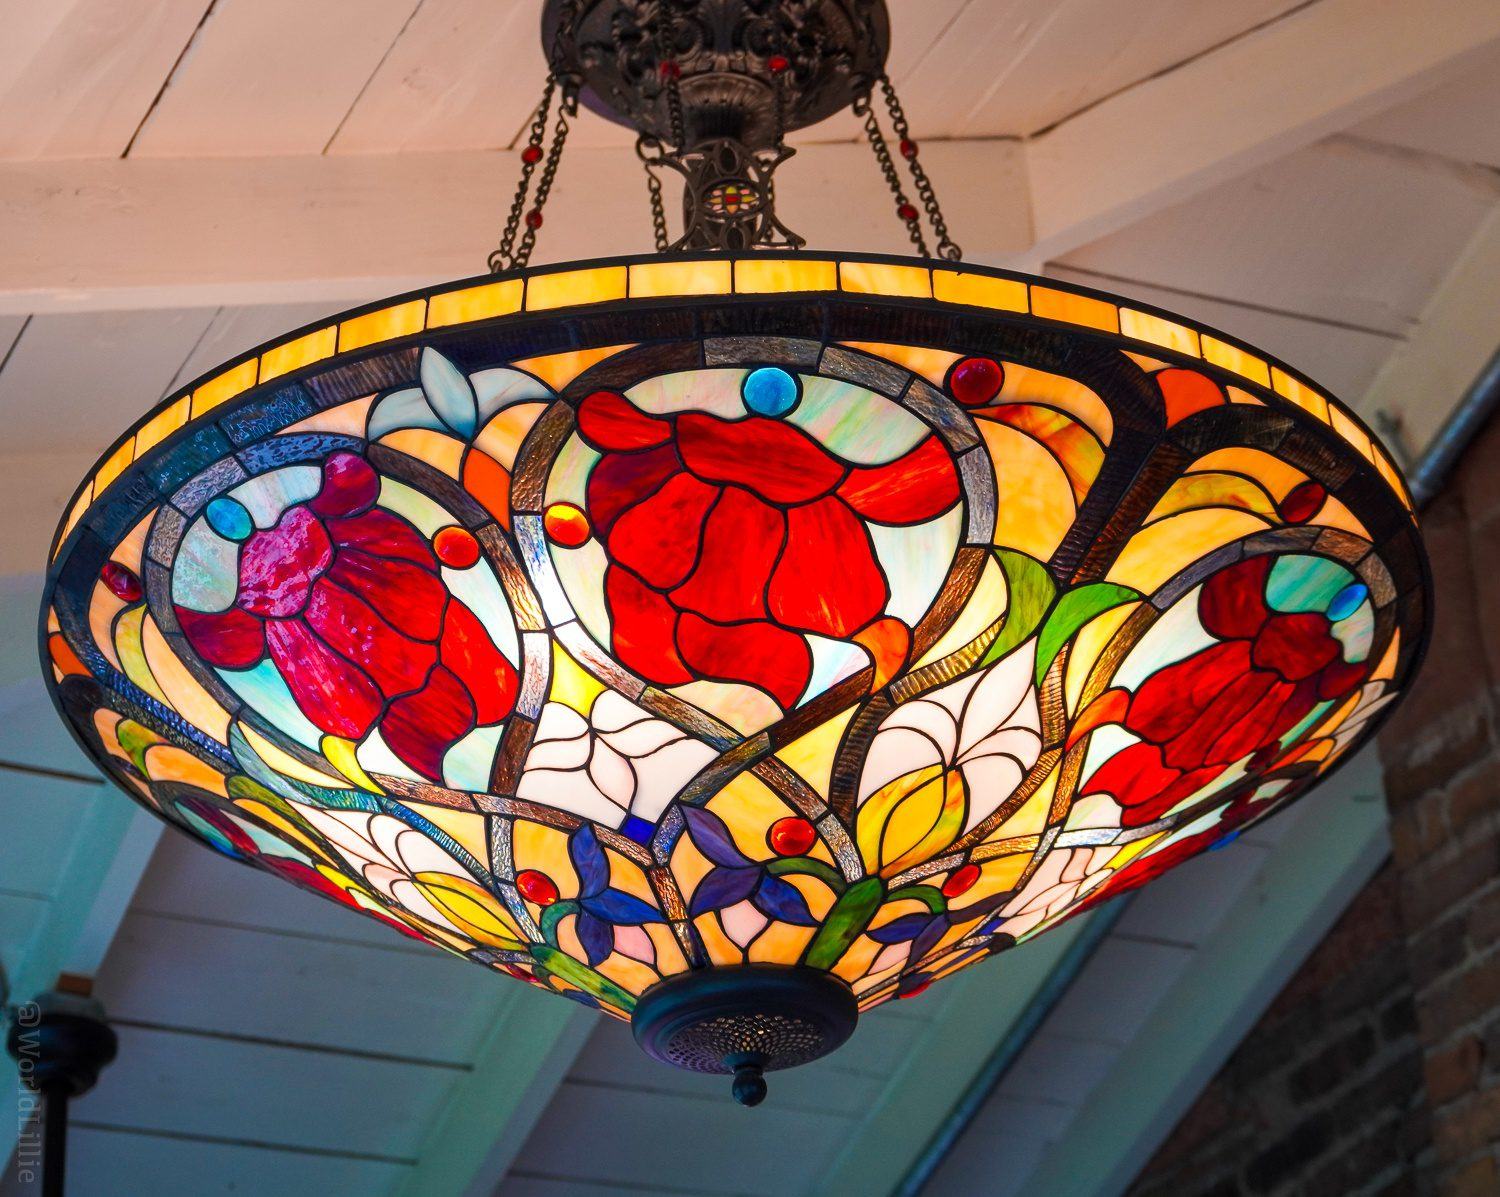 A close-up of the stained glass chandelier at Myriam's Table.